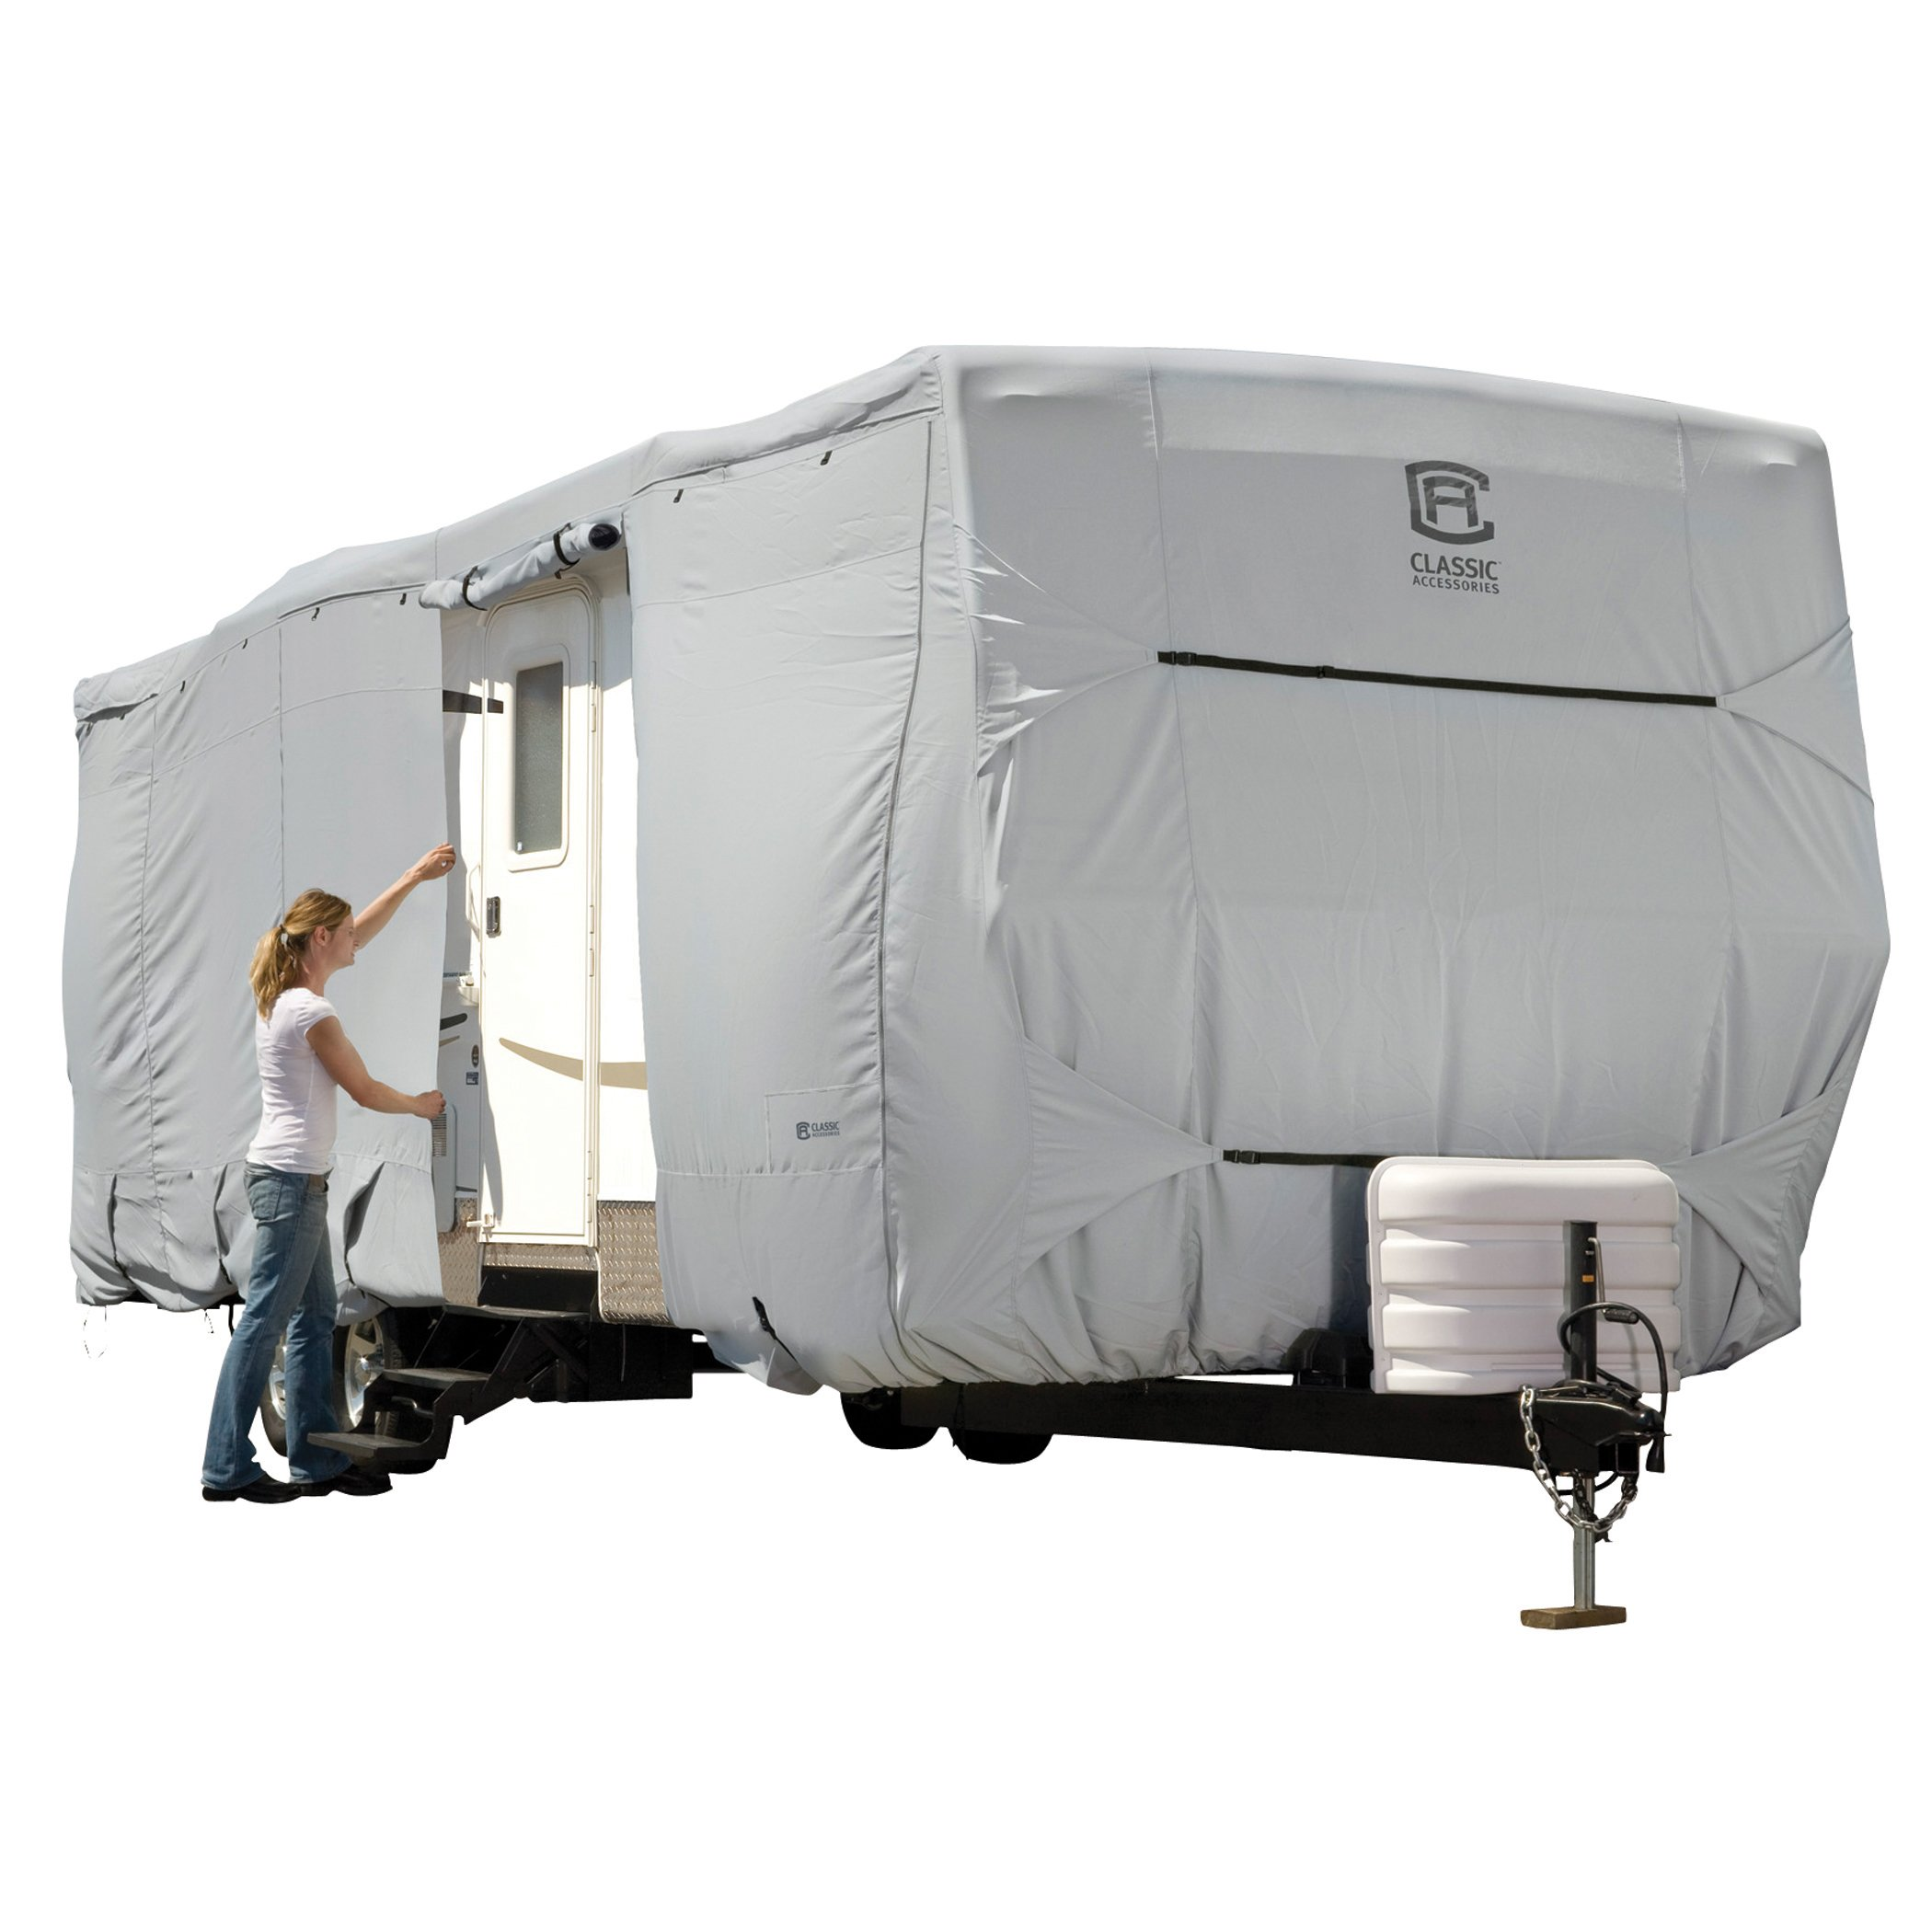 Classic Accessories OverDrive PermaPro Heavy Duty Cover for up to 20' Travel Trailers by Classic Accessories